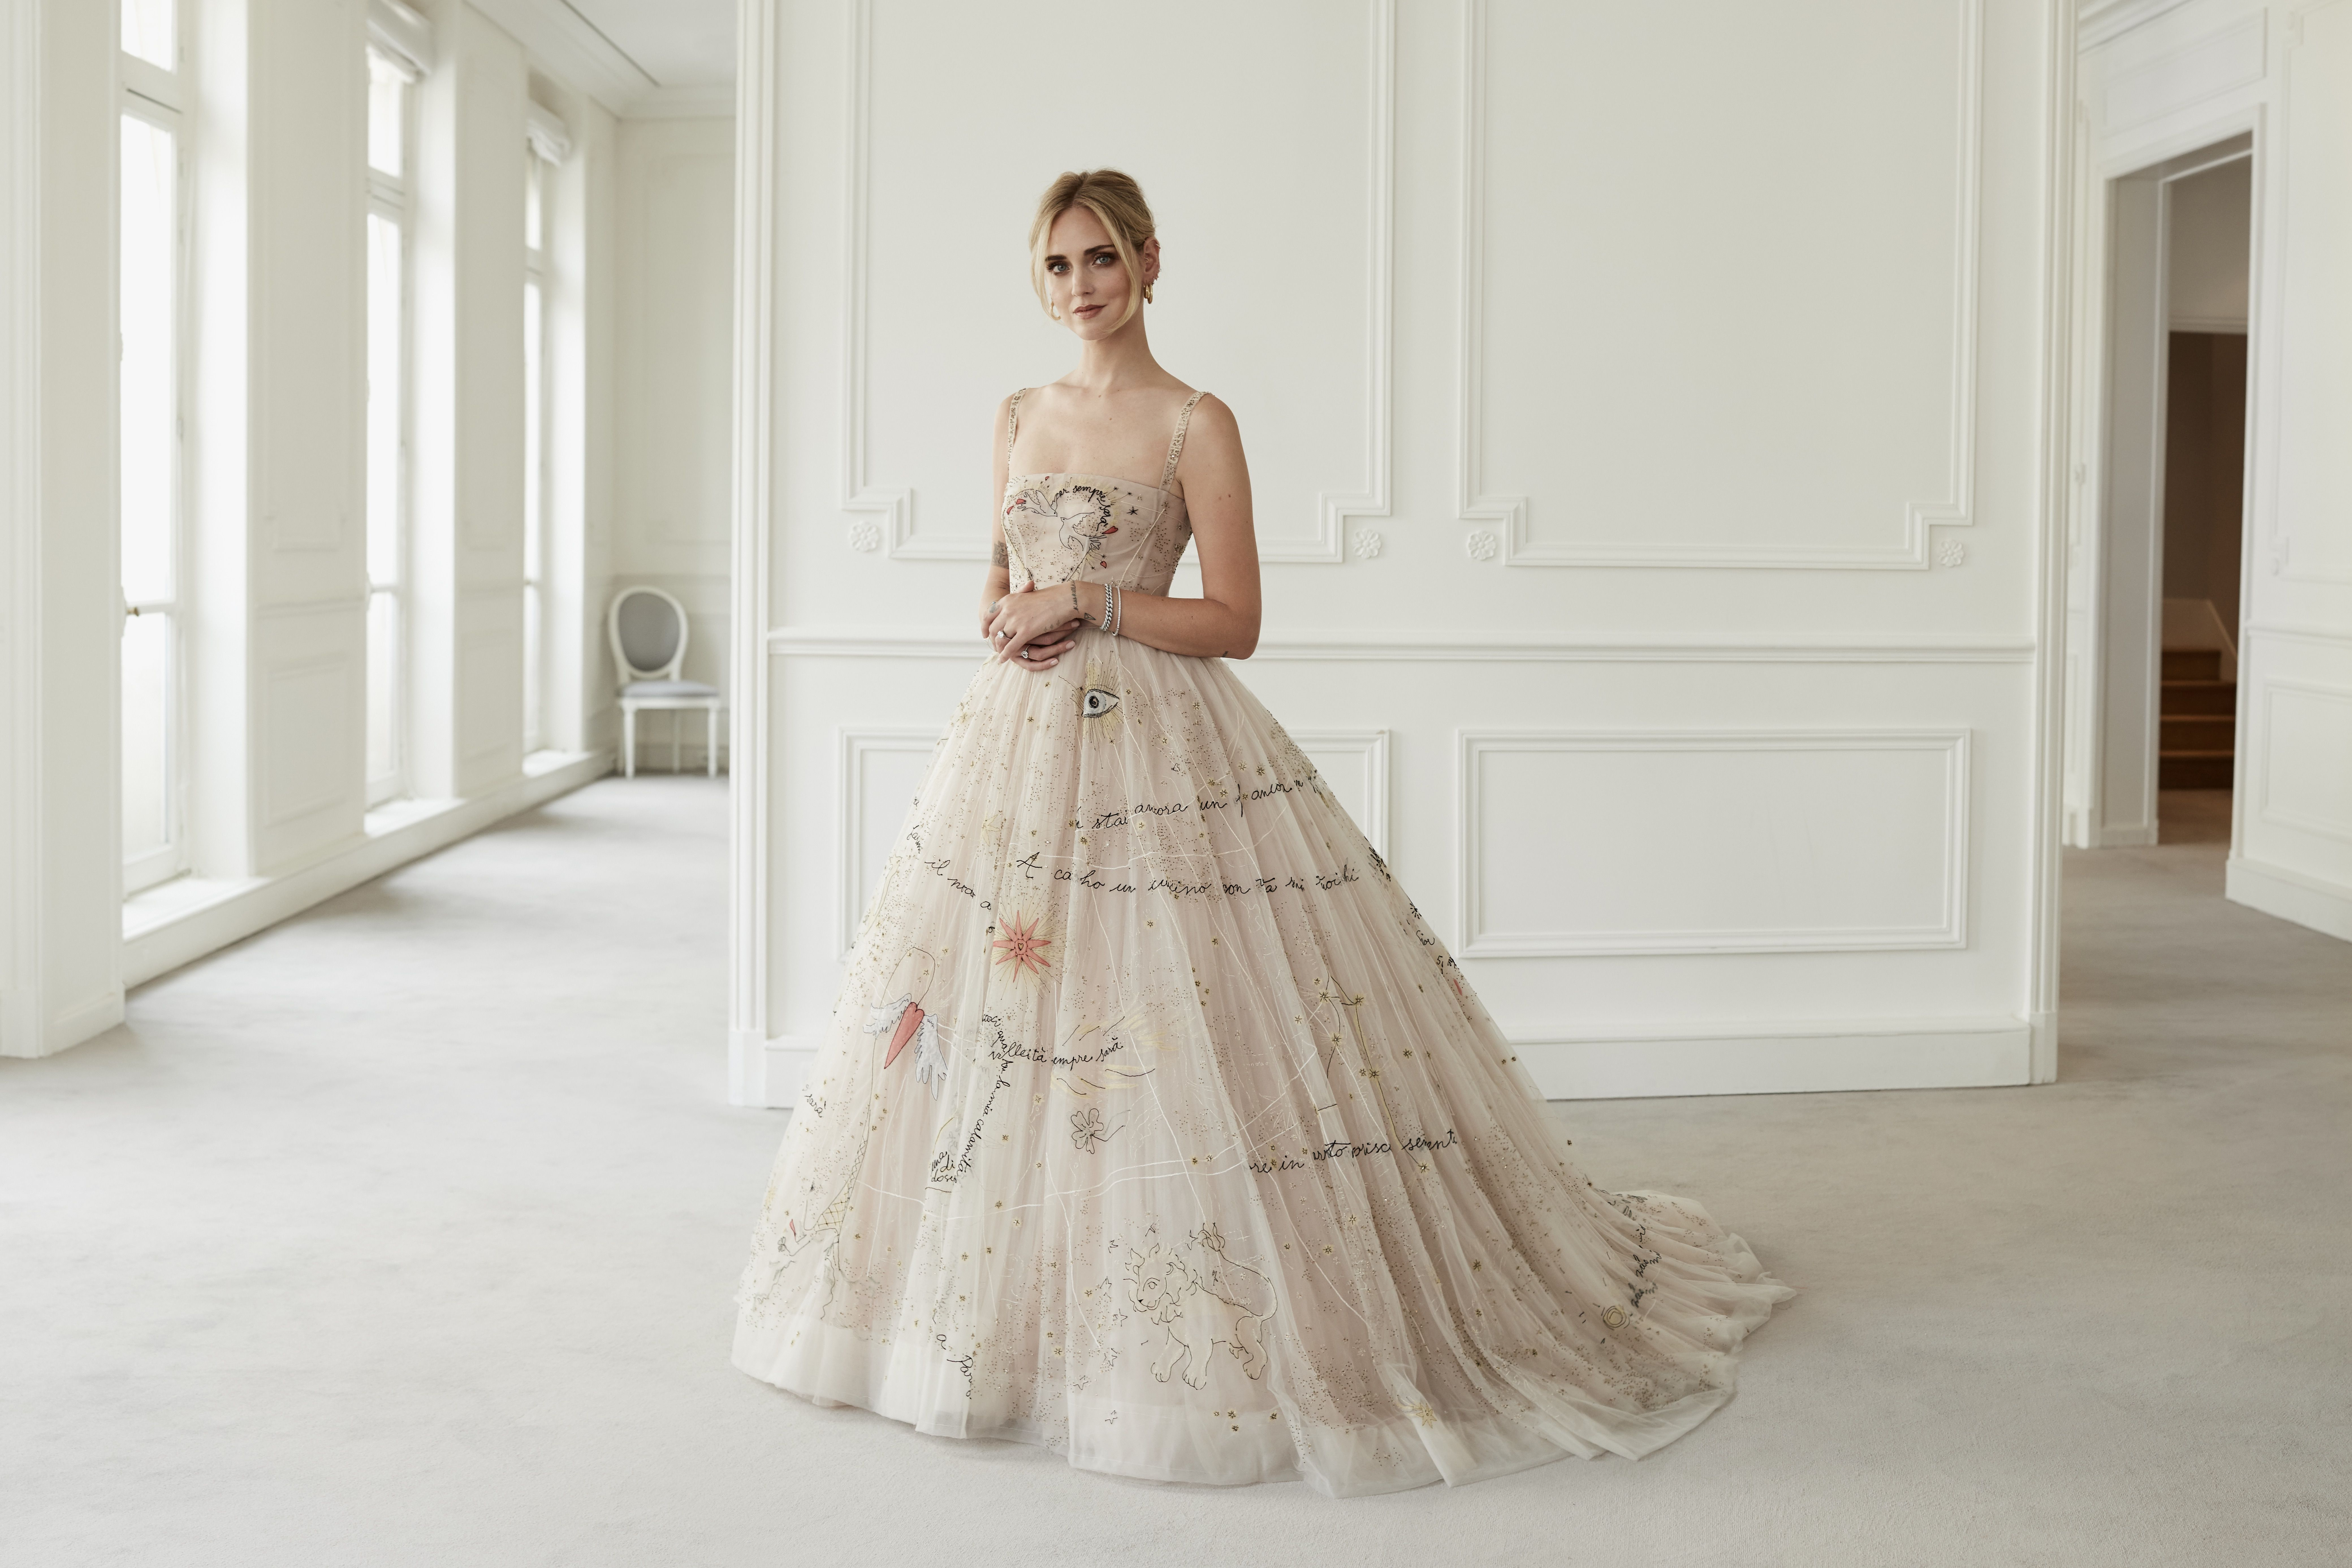 7ab682a46e6 Chiara Ferragni s Wedding Dress Is More Influential than Meghan Markle s